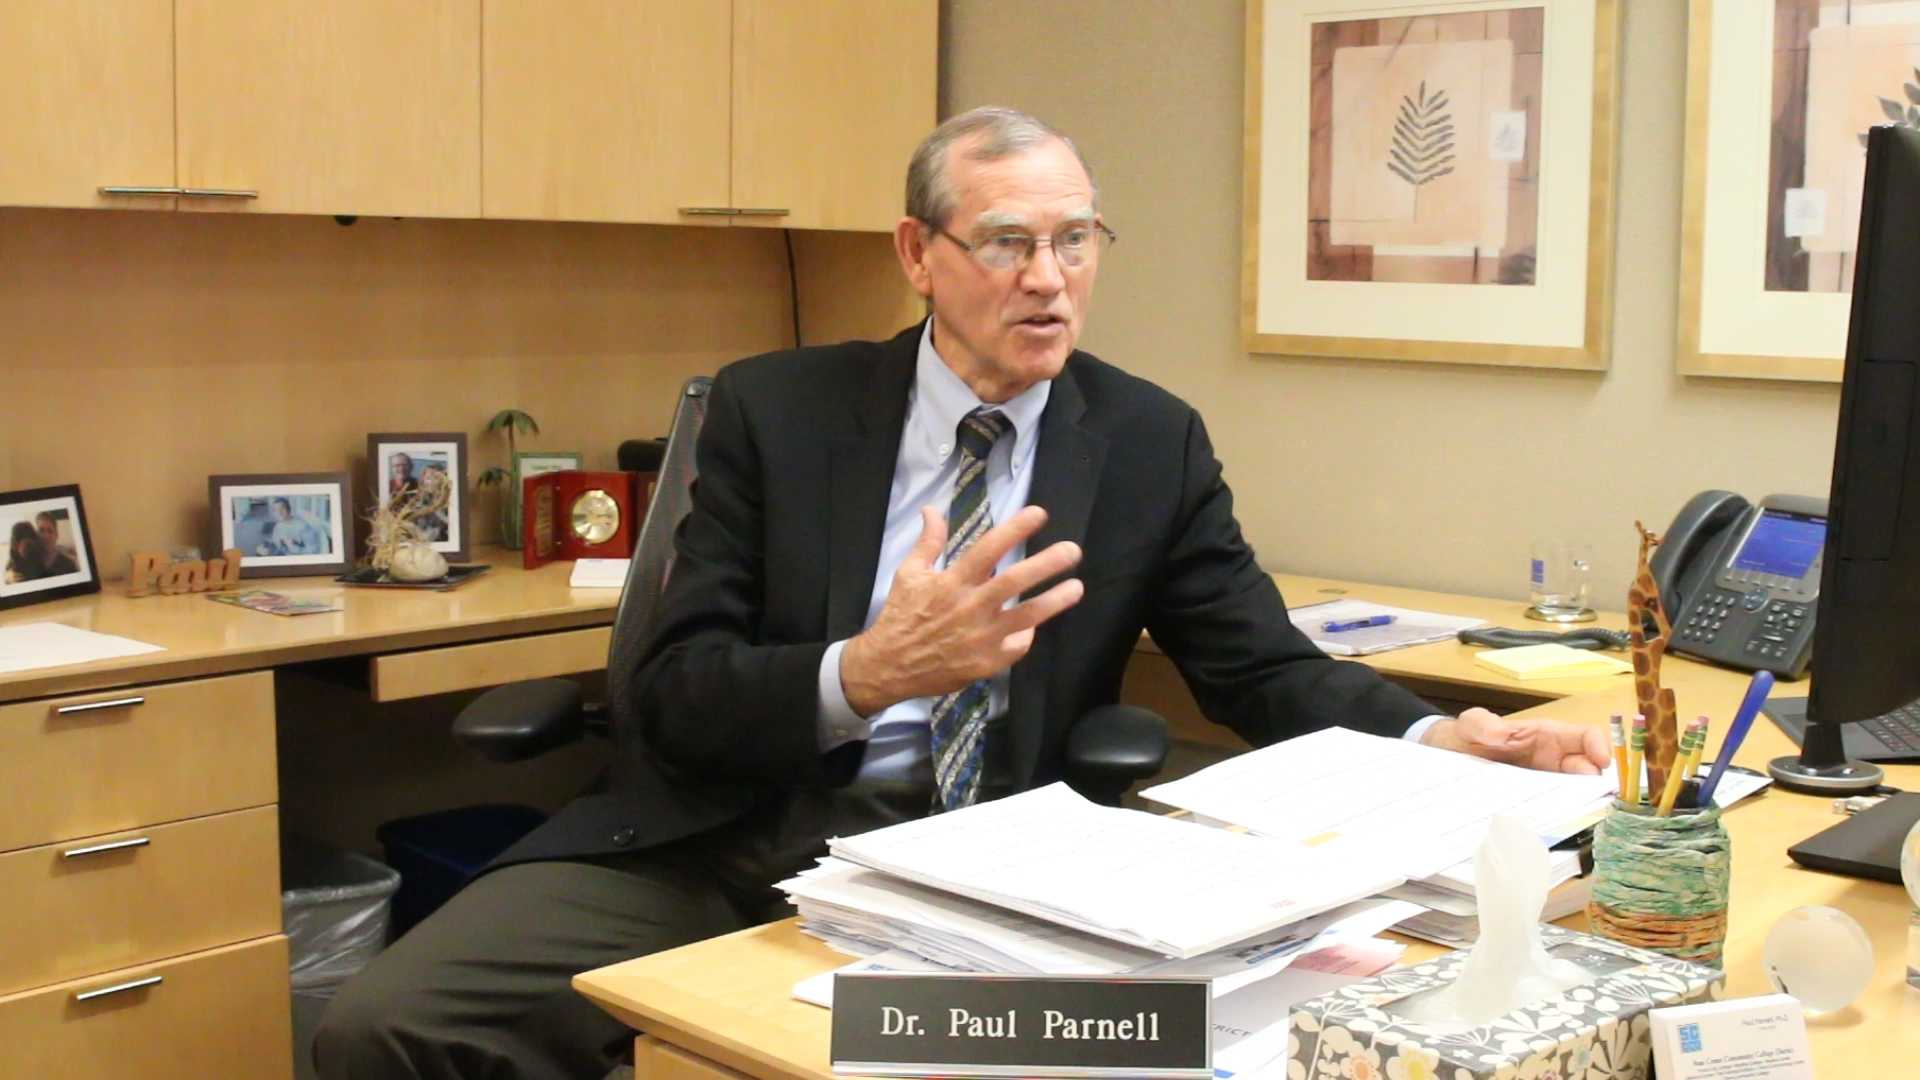 The State Center Community College District Chancellor, Dave Paul Parnell talks about his new position at the district on April 27, 2016.